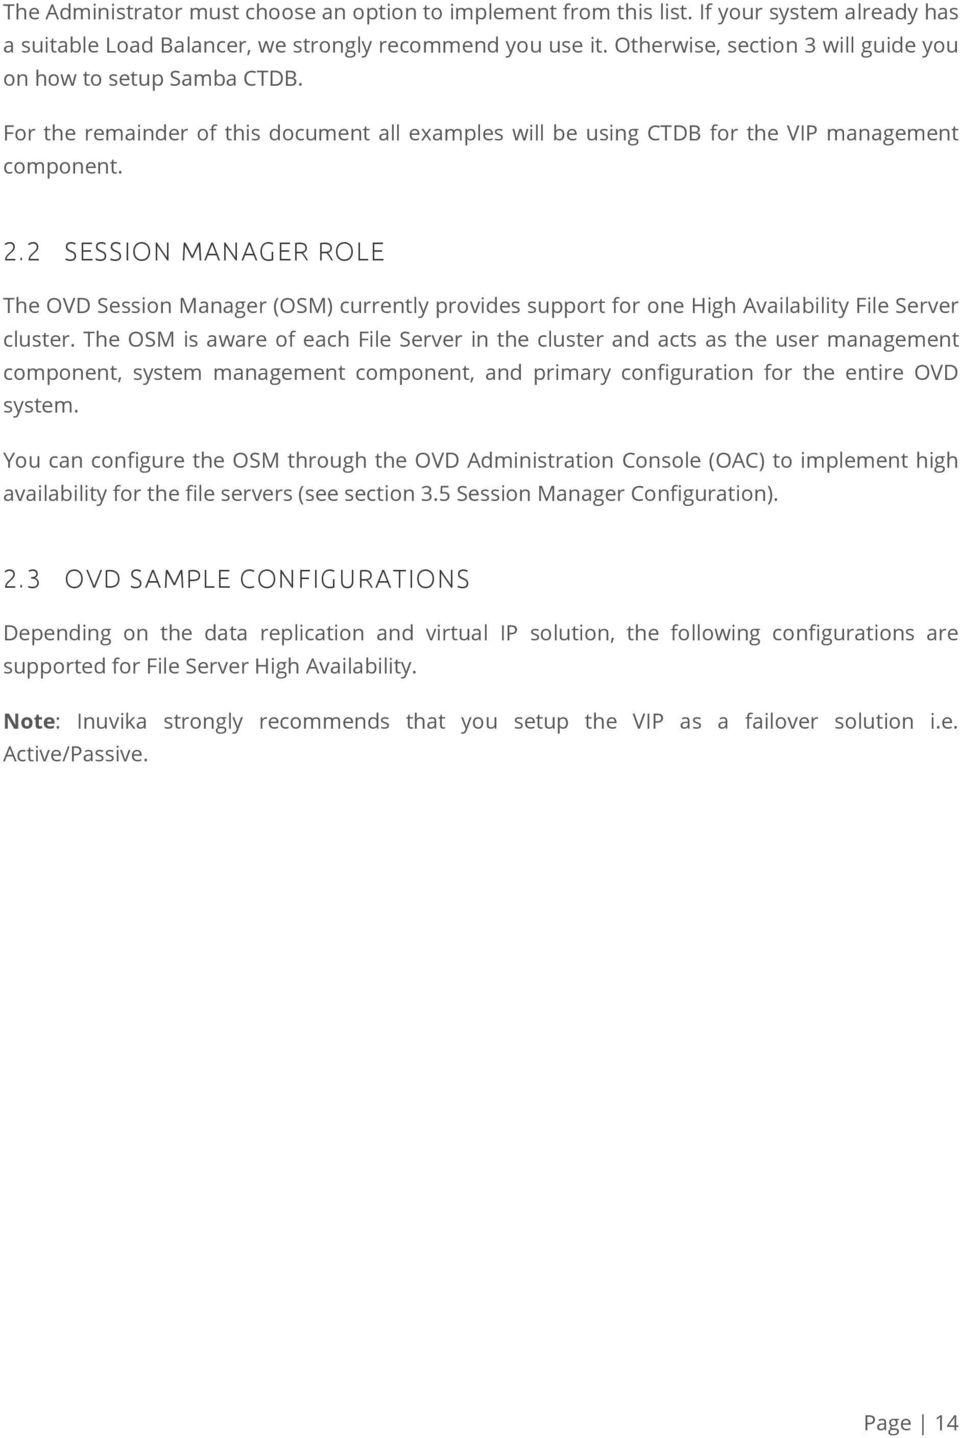 2 SESSION MANAGER ROLE The OVD Session Manager (OSM) currently provides support for one High Availability File Server cluster.